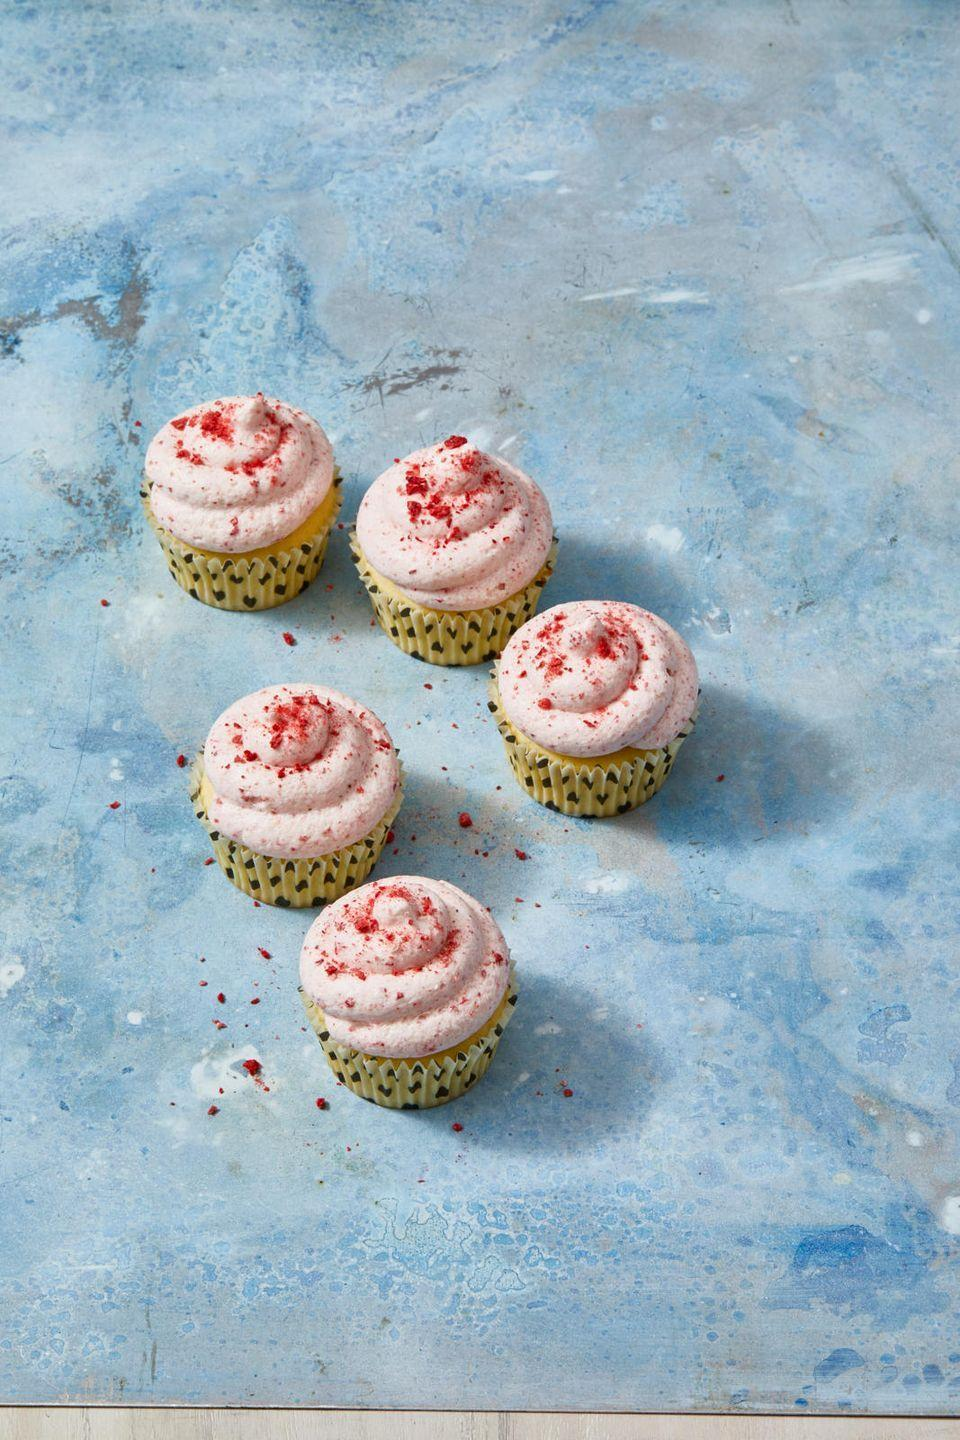 """<p>Add a few extra freeze-dried strawberries to the buttercream frosting to turn it blood-thirsty red.</p><p><em><a href=""""https://www.goodhousekeeping.com/food-recipes/dessert/a31251488/lemon-cupcakes-with-strawberry-frosting-recipe/"""" rel=""""nofollow noopener"""" target=""""_blank"""" data-ylk=""""slk:Get the recipe for Lemon Cupcakes With Strawberry Frosting »"""" class=""""link rapid-noclick-resp"""">Get the recipe for Lemon Cupcakes With Strawberry Frosting »</a></em></p>"""